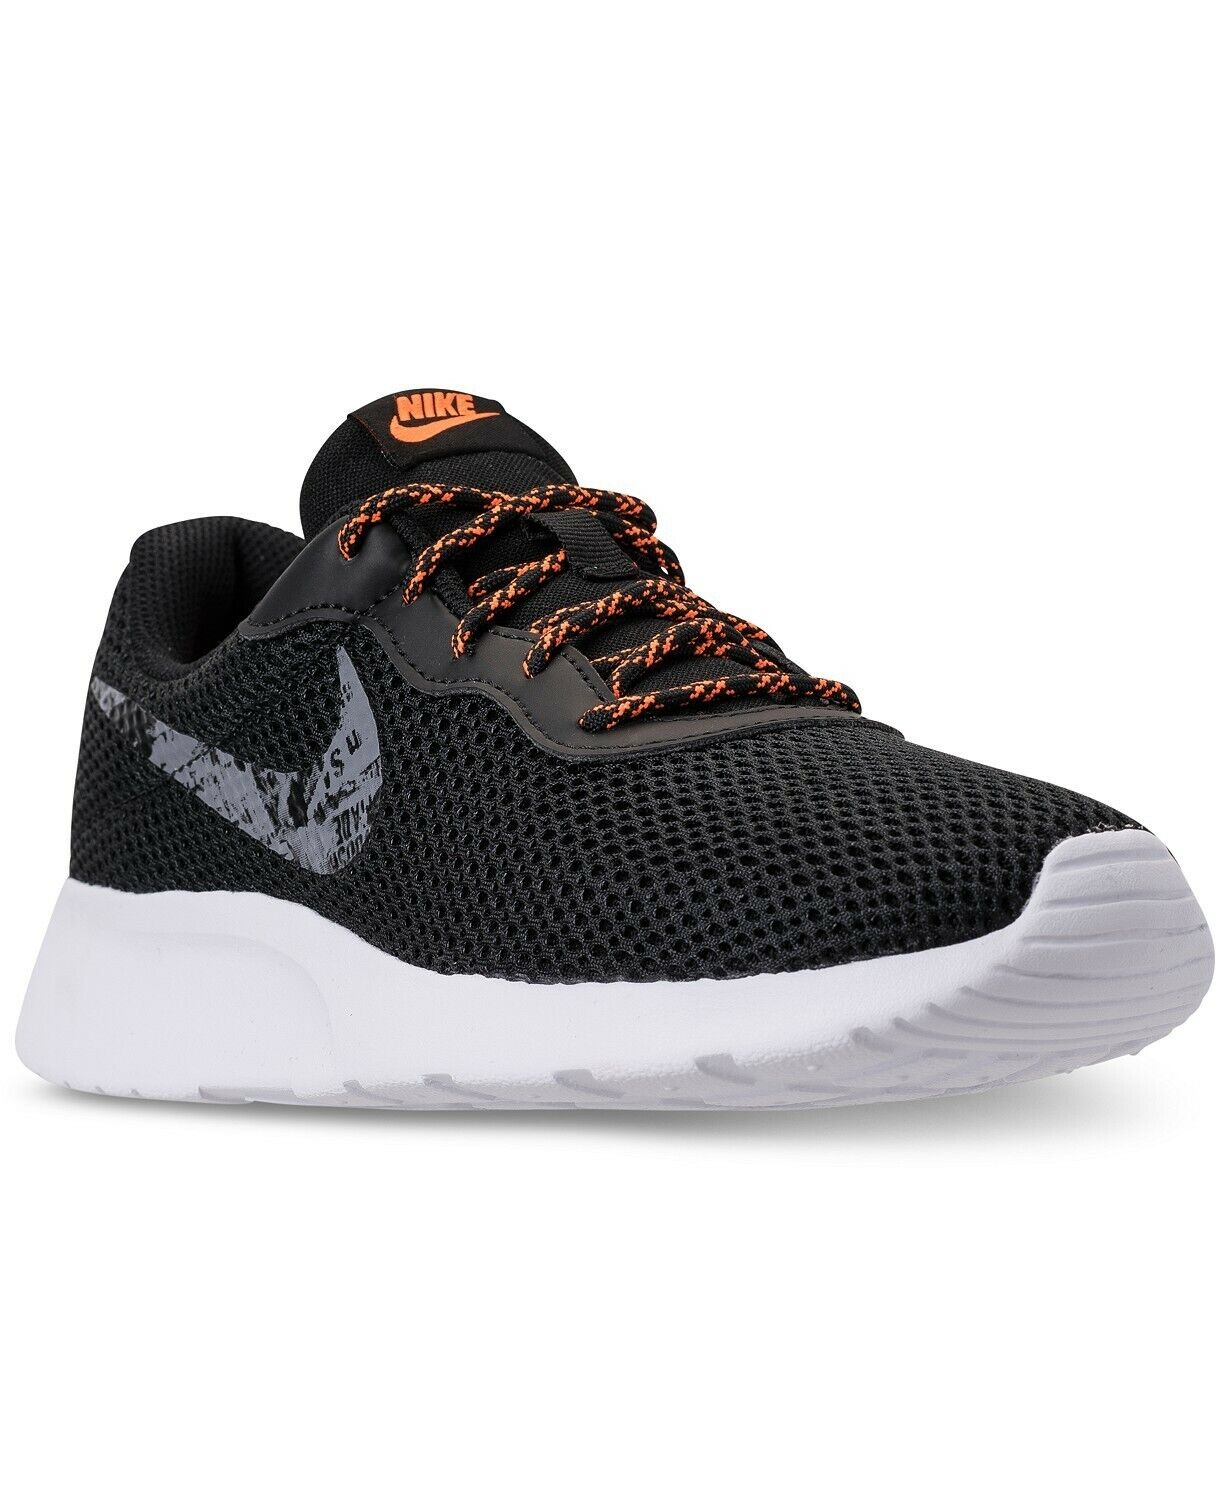 Nike Men's Athletic shoes from Finish Line